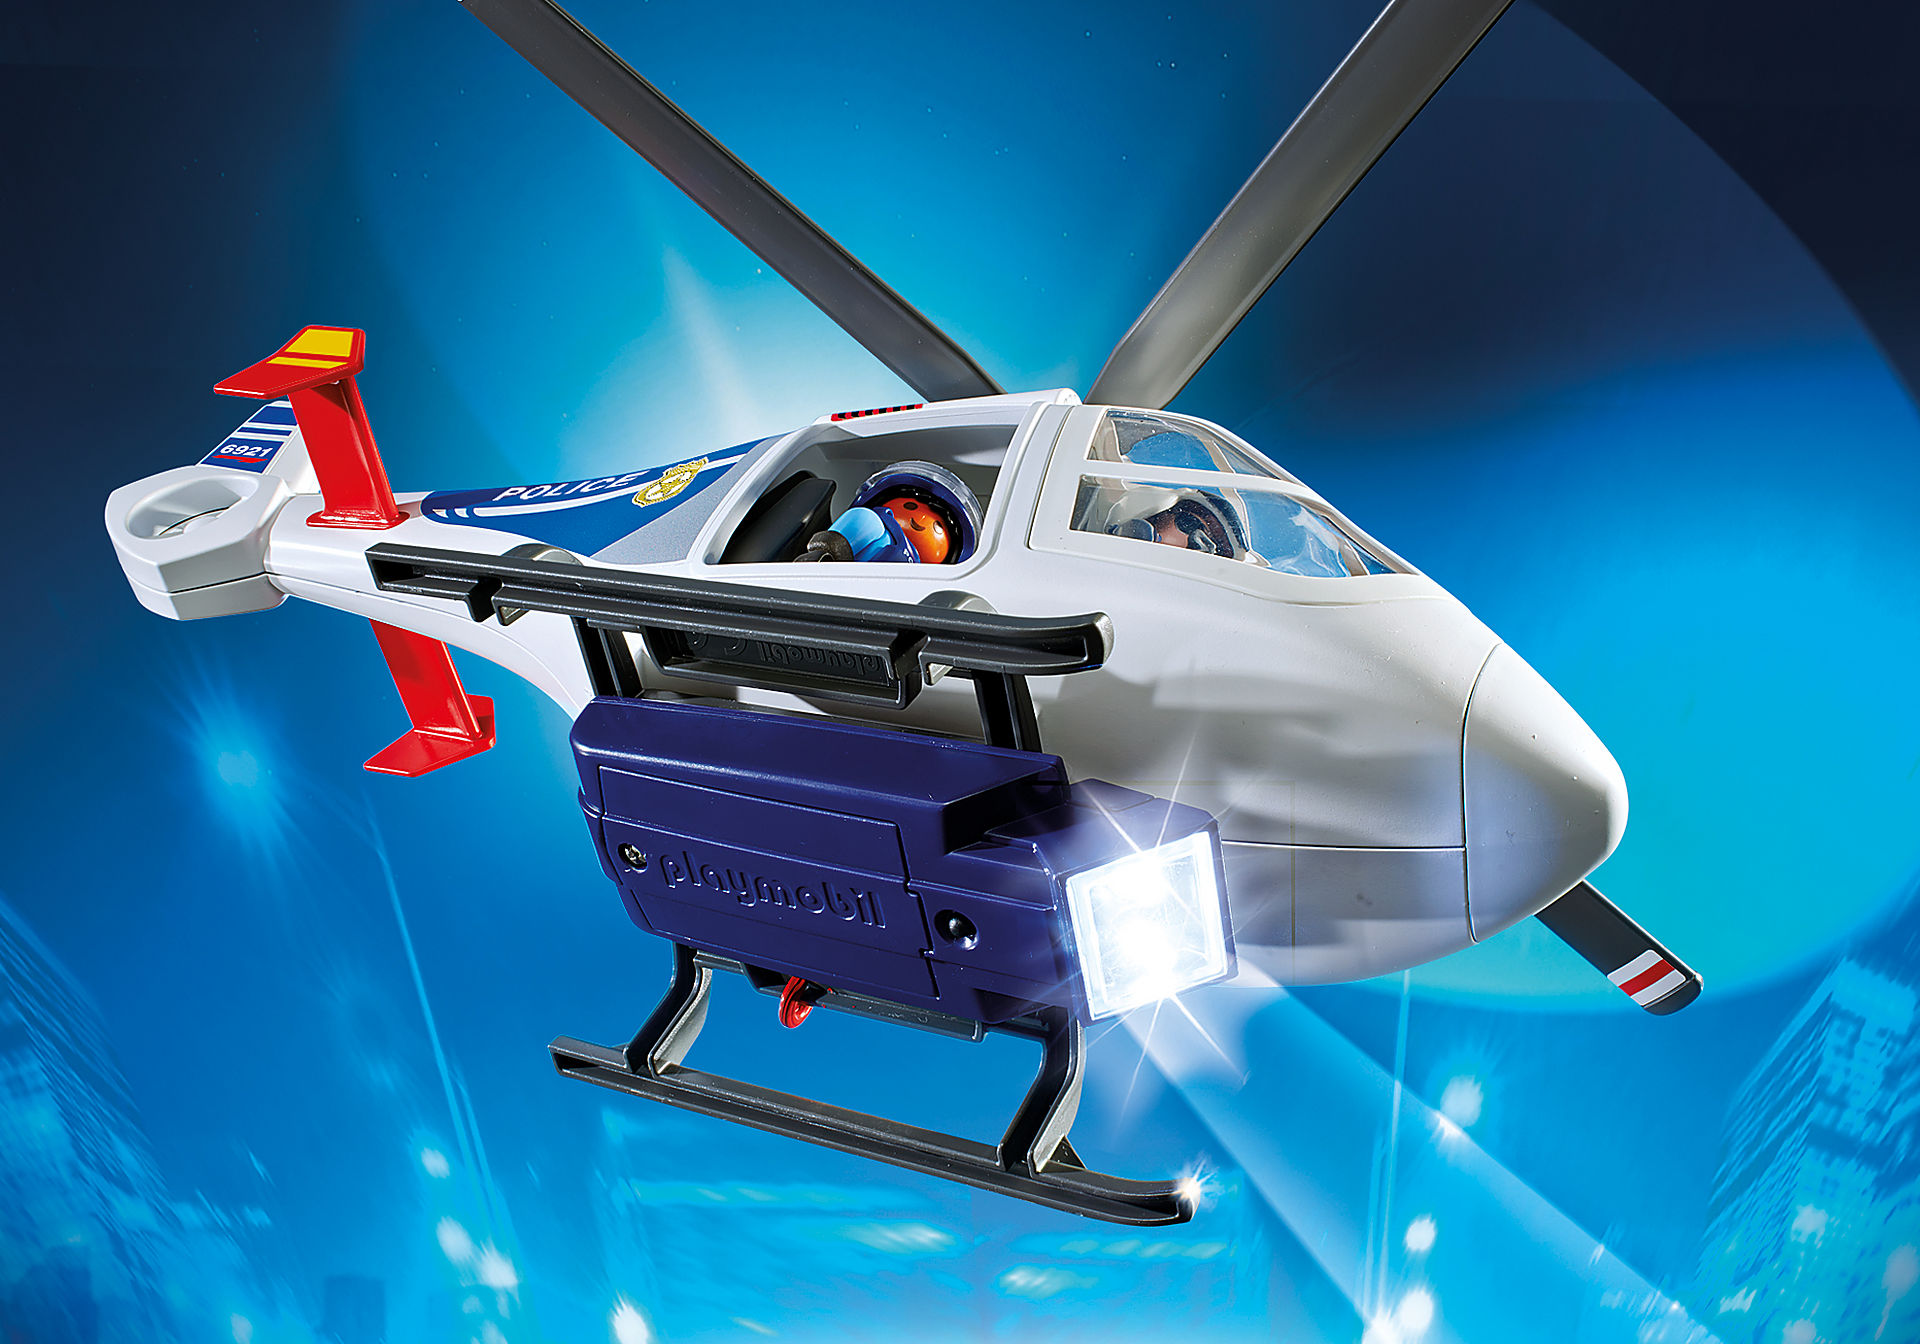 6921 Police Helicopter with LED Searchlight zoom image6